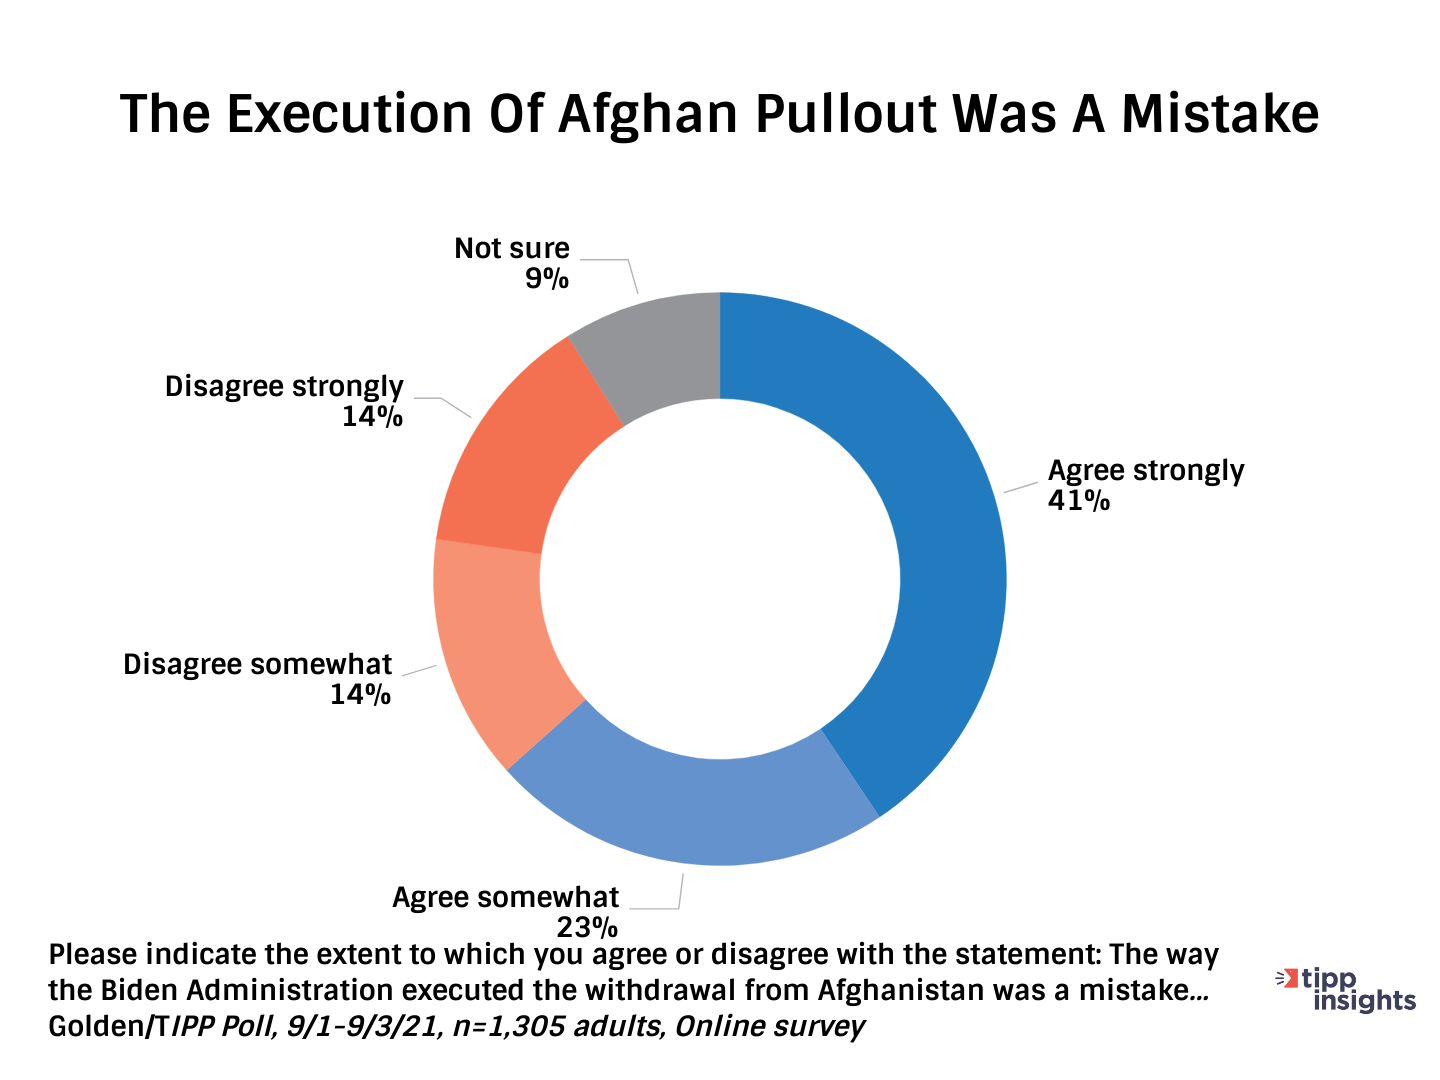 TIPP Poll Results: Americans believing the execution of Afghan Pullout was a mistake